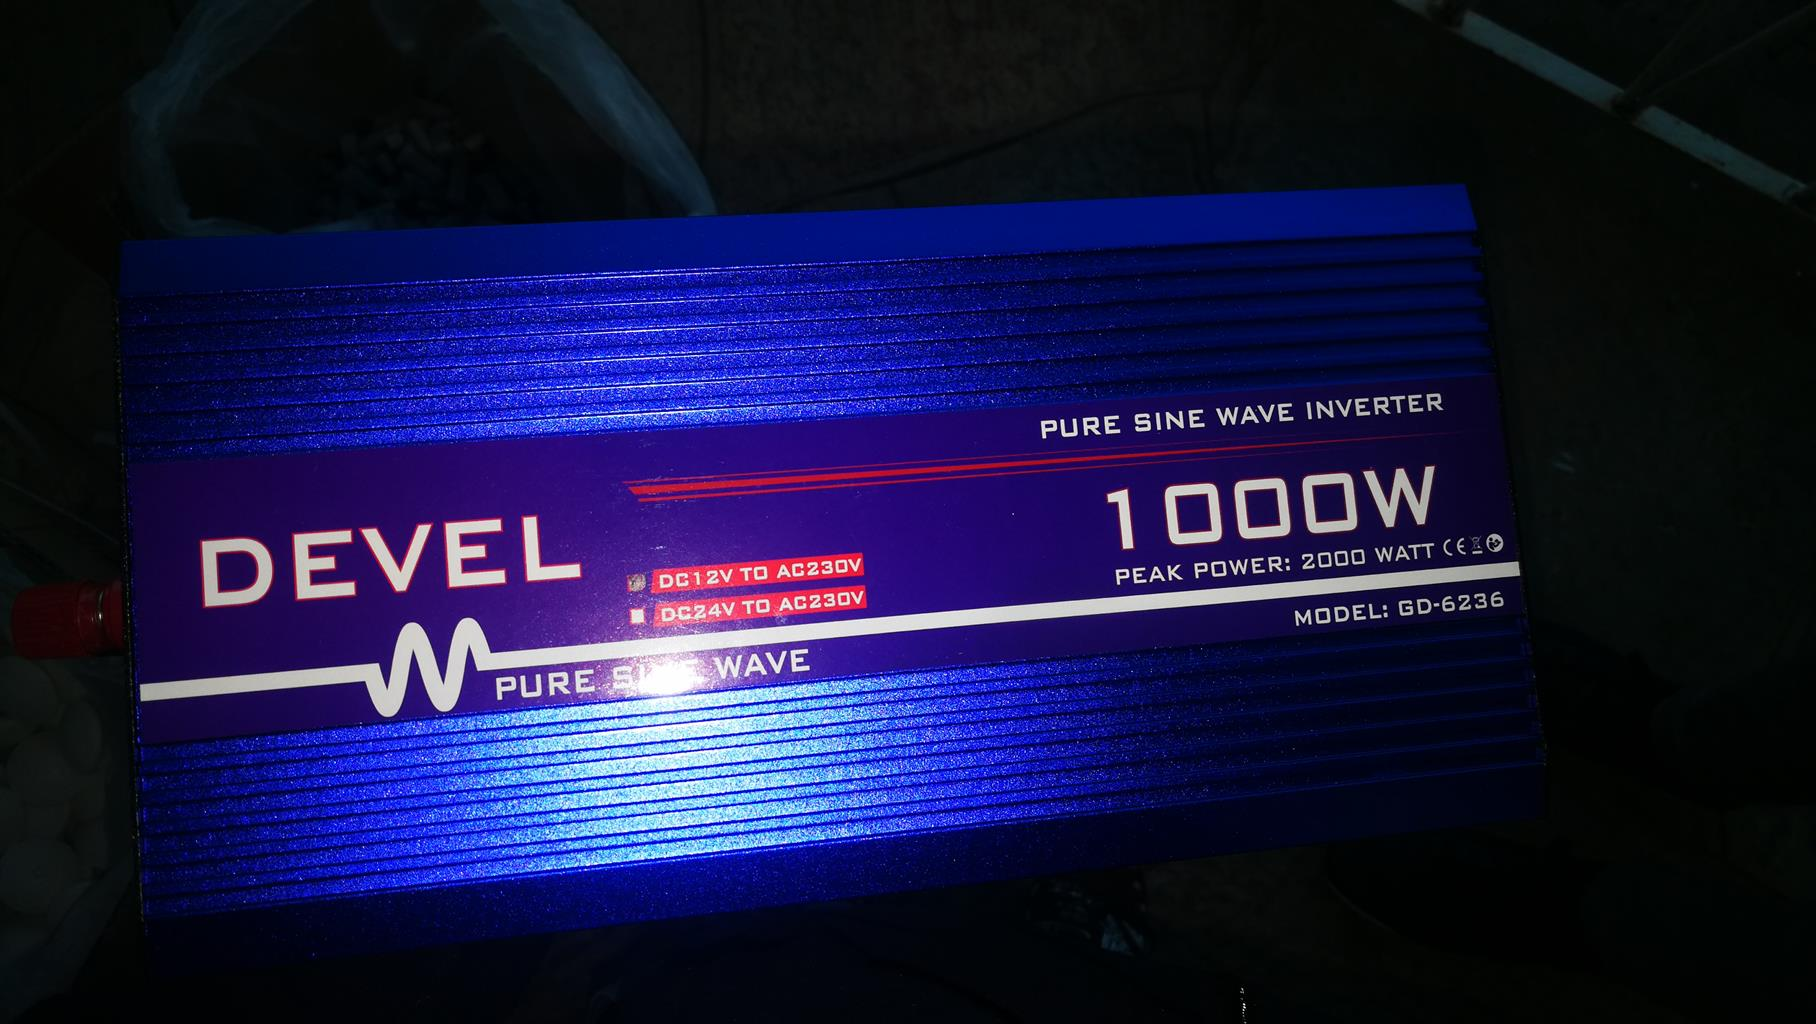 Devel Inverter (1000W) For Sale